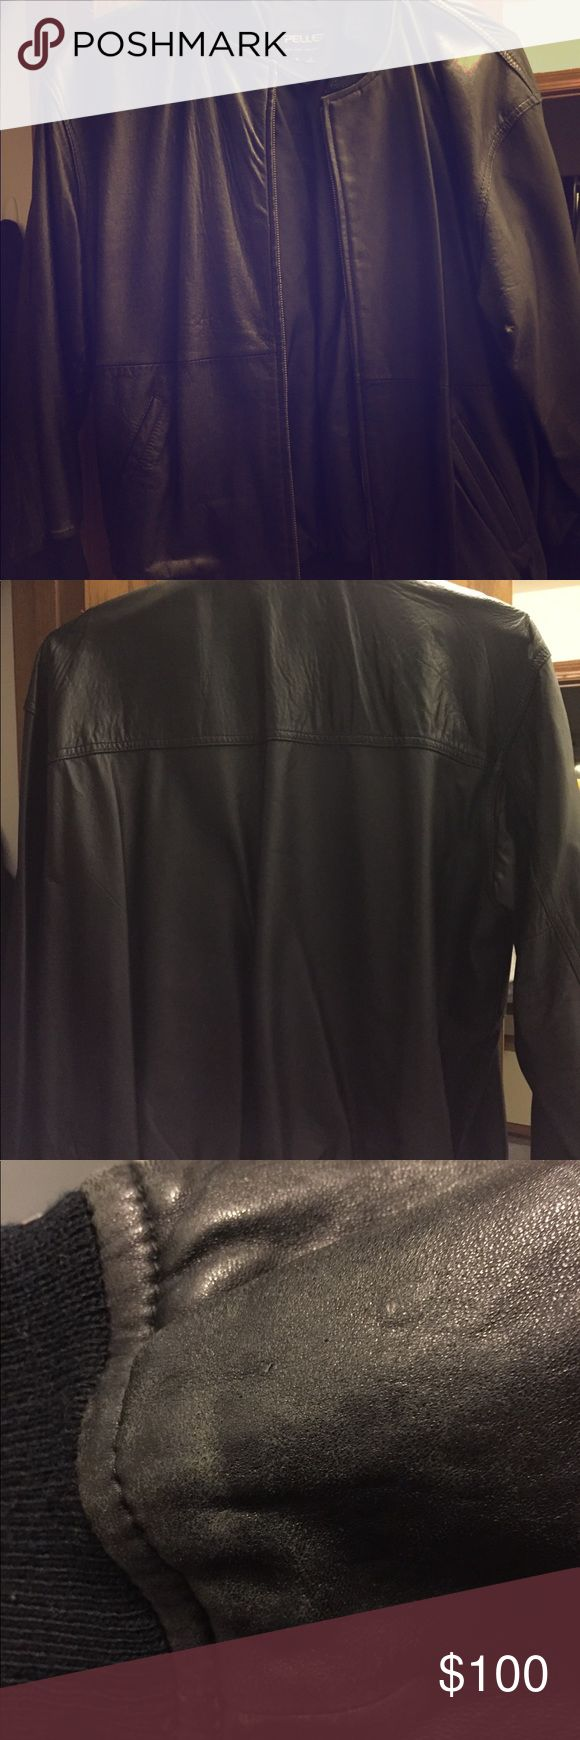 Black leather jacket Ladies black leather jacket. Minimum wear just been sitting in closet. Size L some wear on sleeves see last pic. Pelle Pelle Jackets & Coats